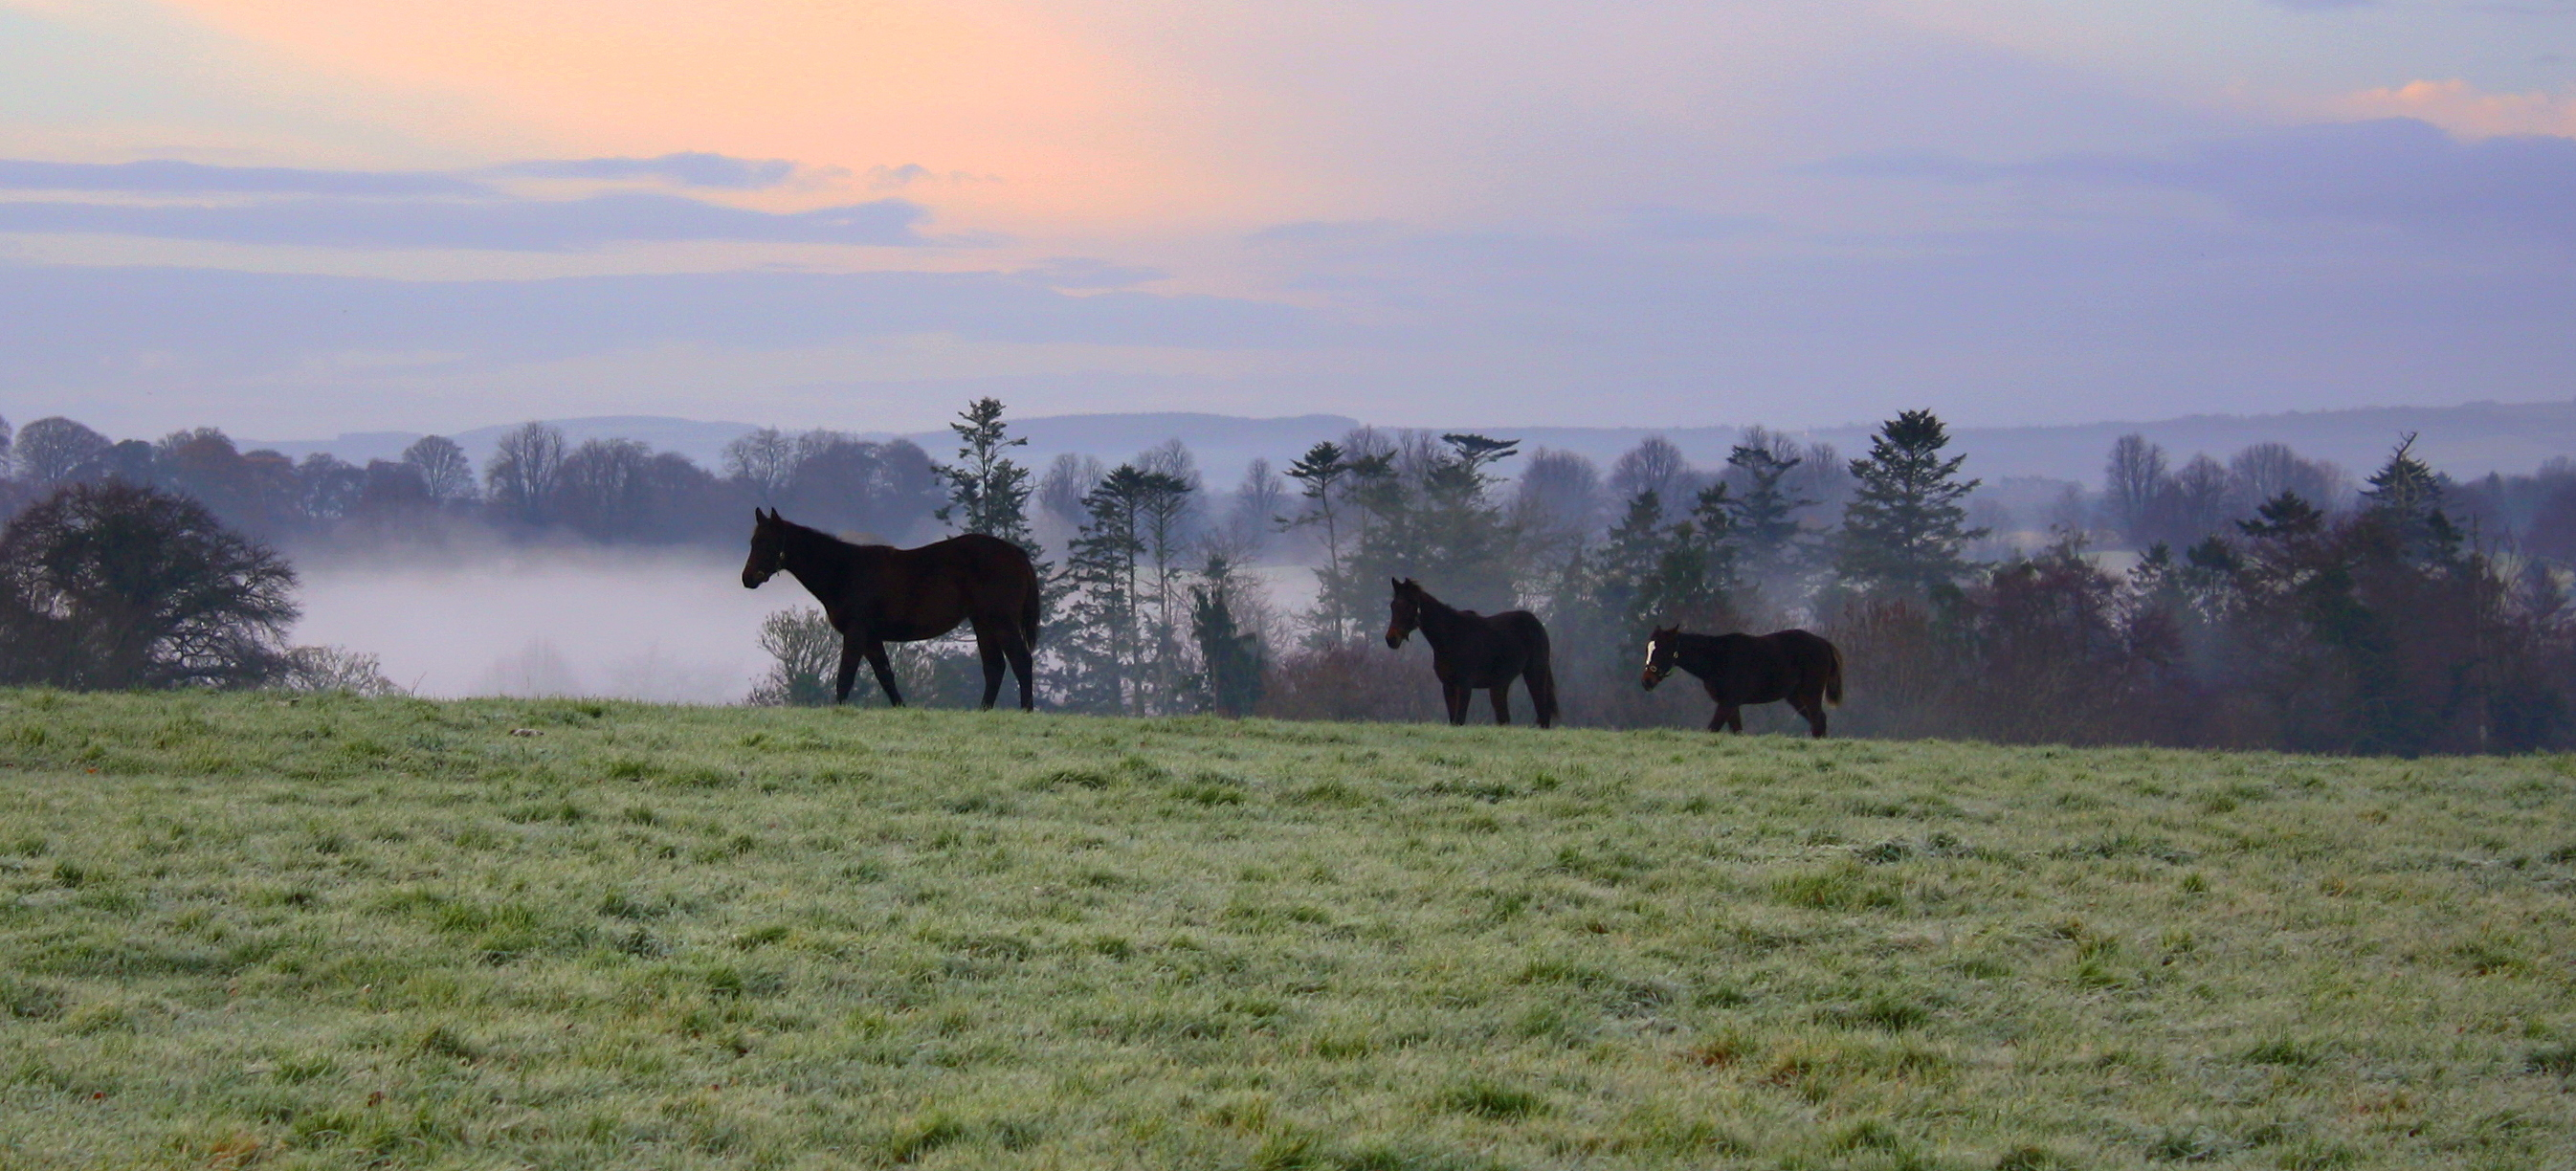 Horses at Mount Juliet image